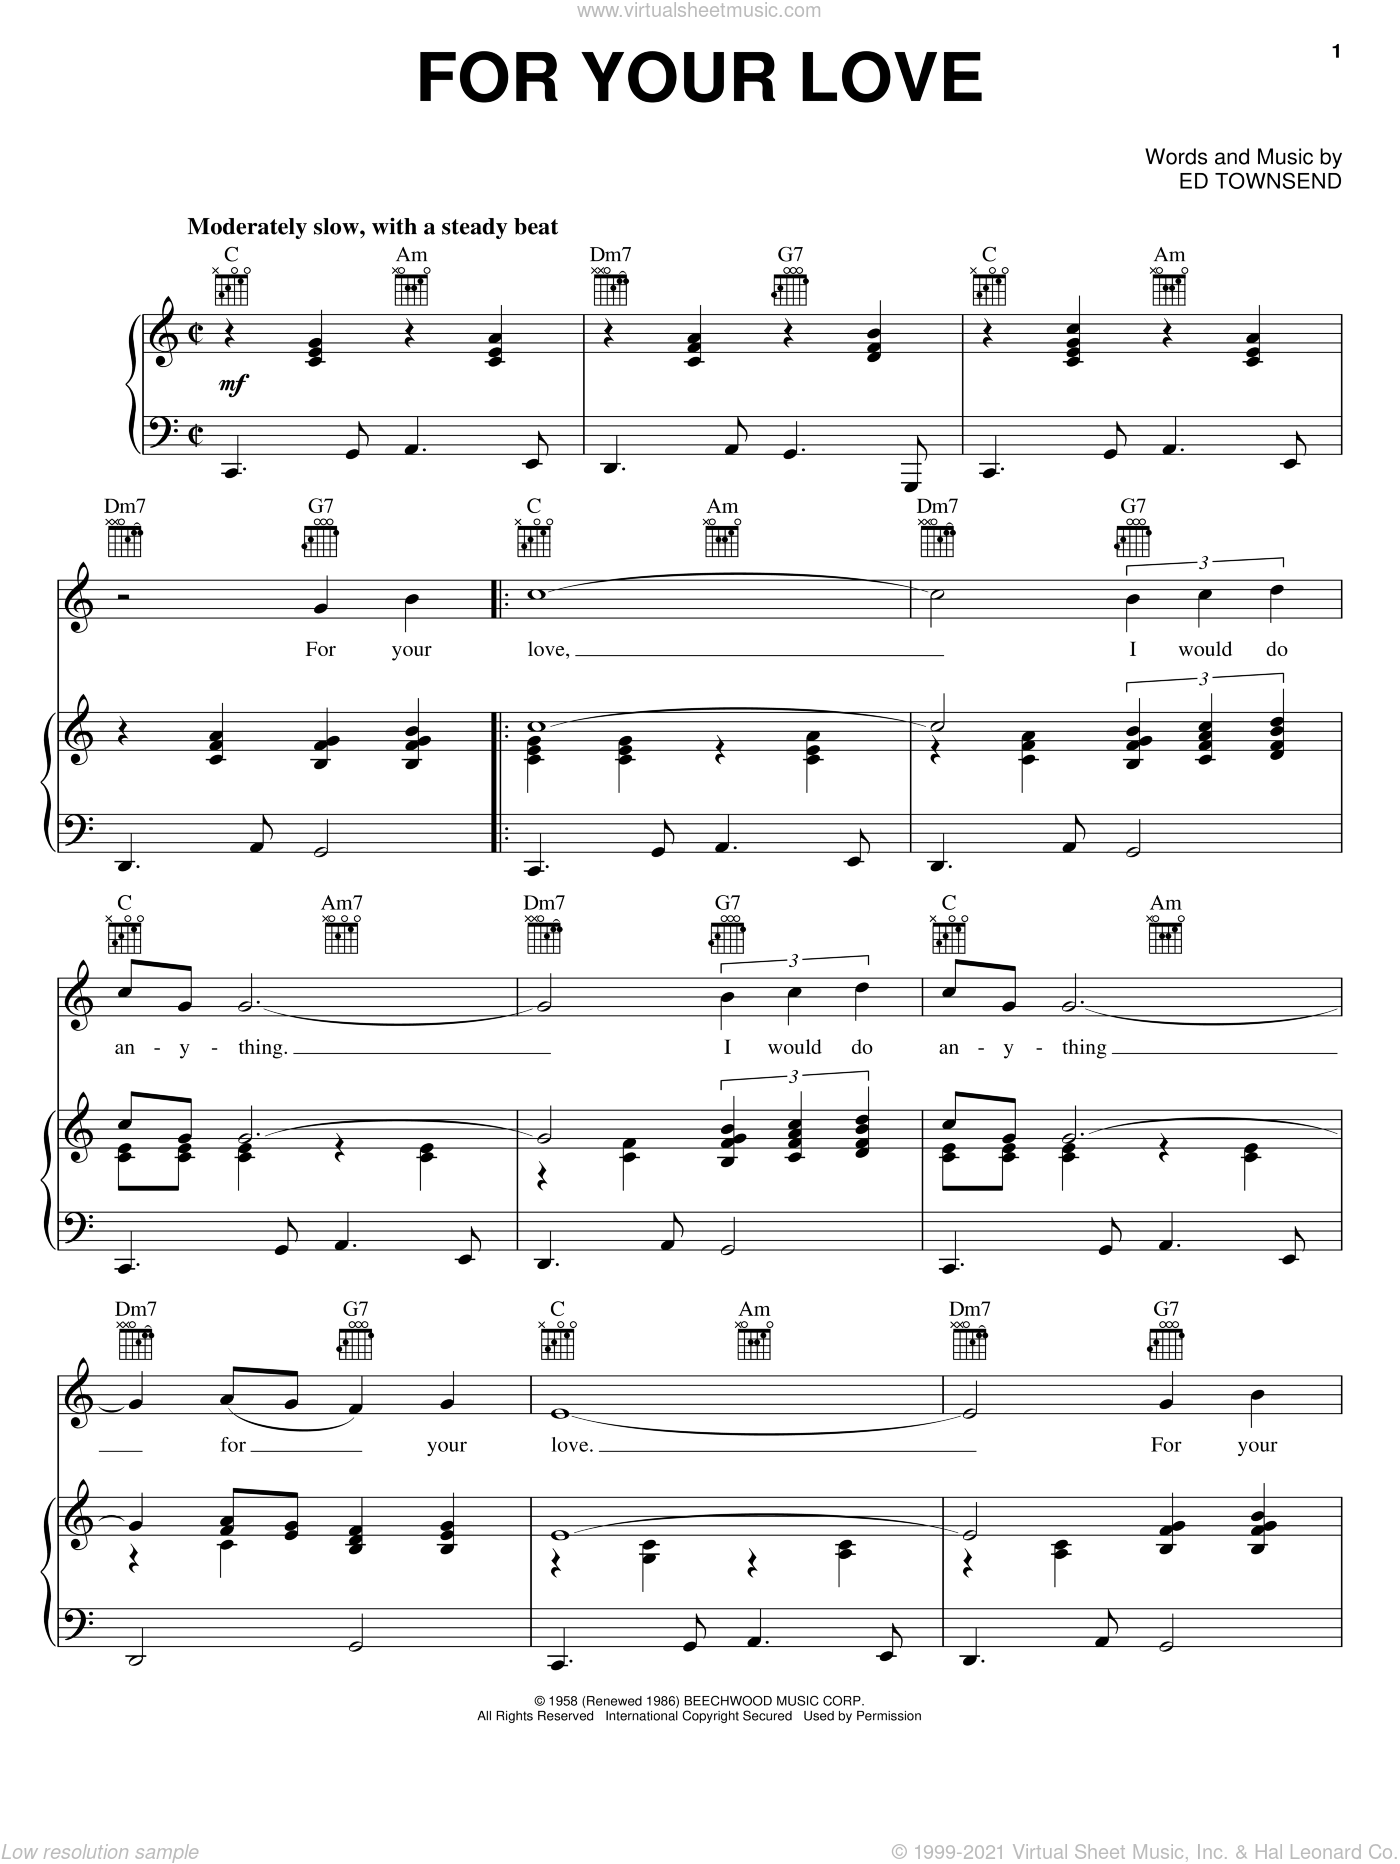 For Your Love sheet music for voice, piano or guitar by Ed Townsend, Gwen McCrae and Peaches & Herb, intermediate skill level